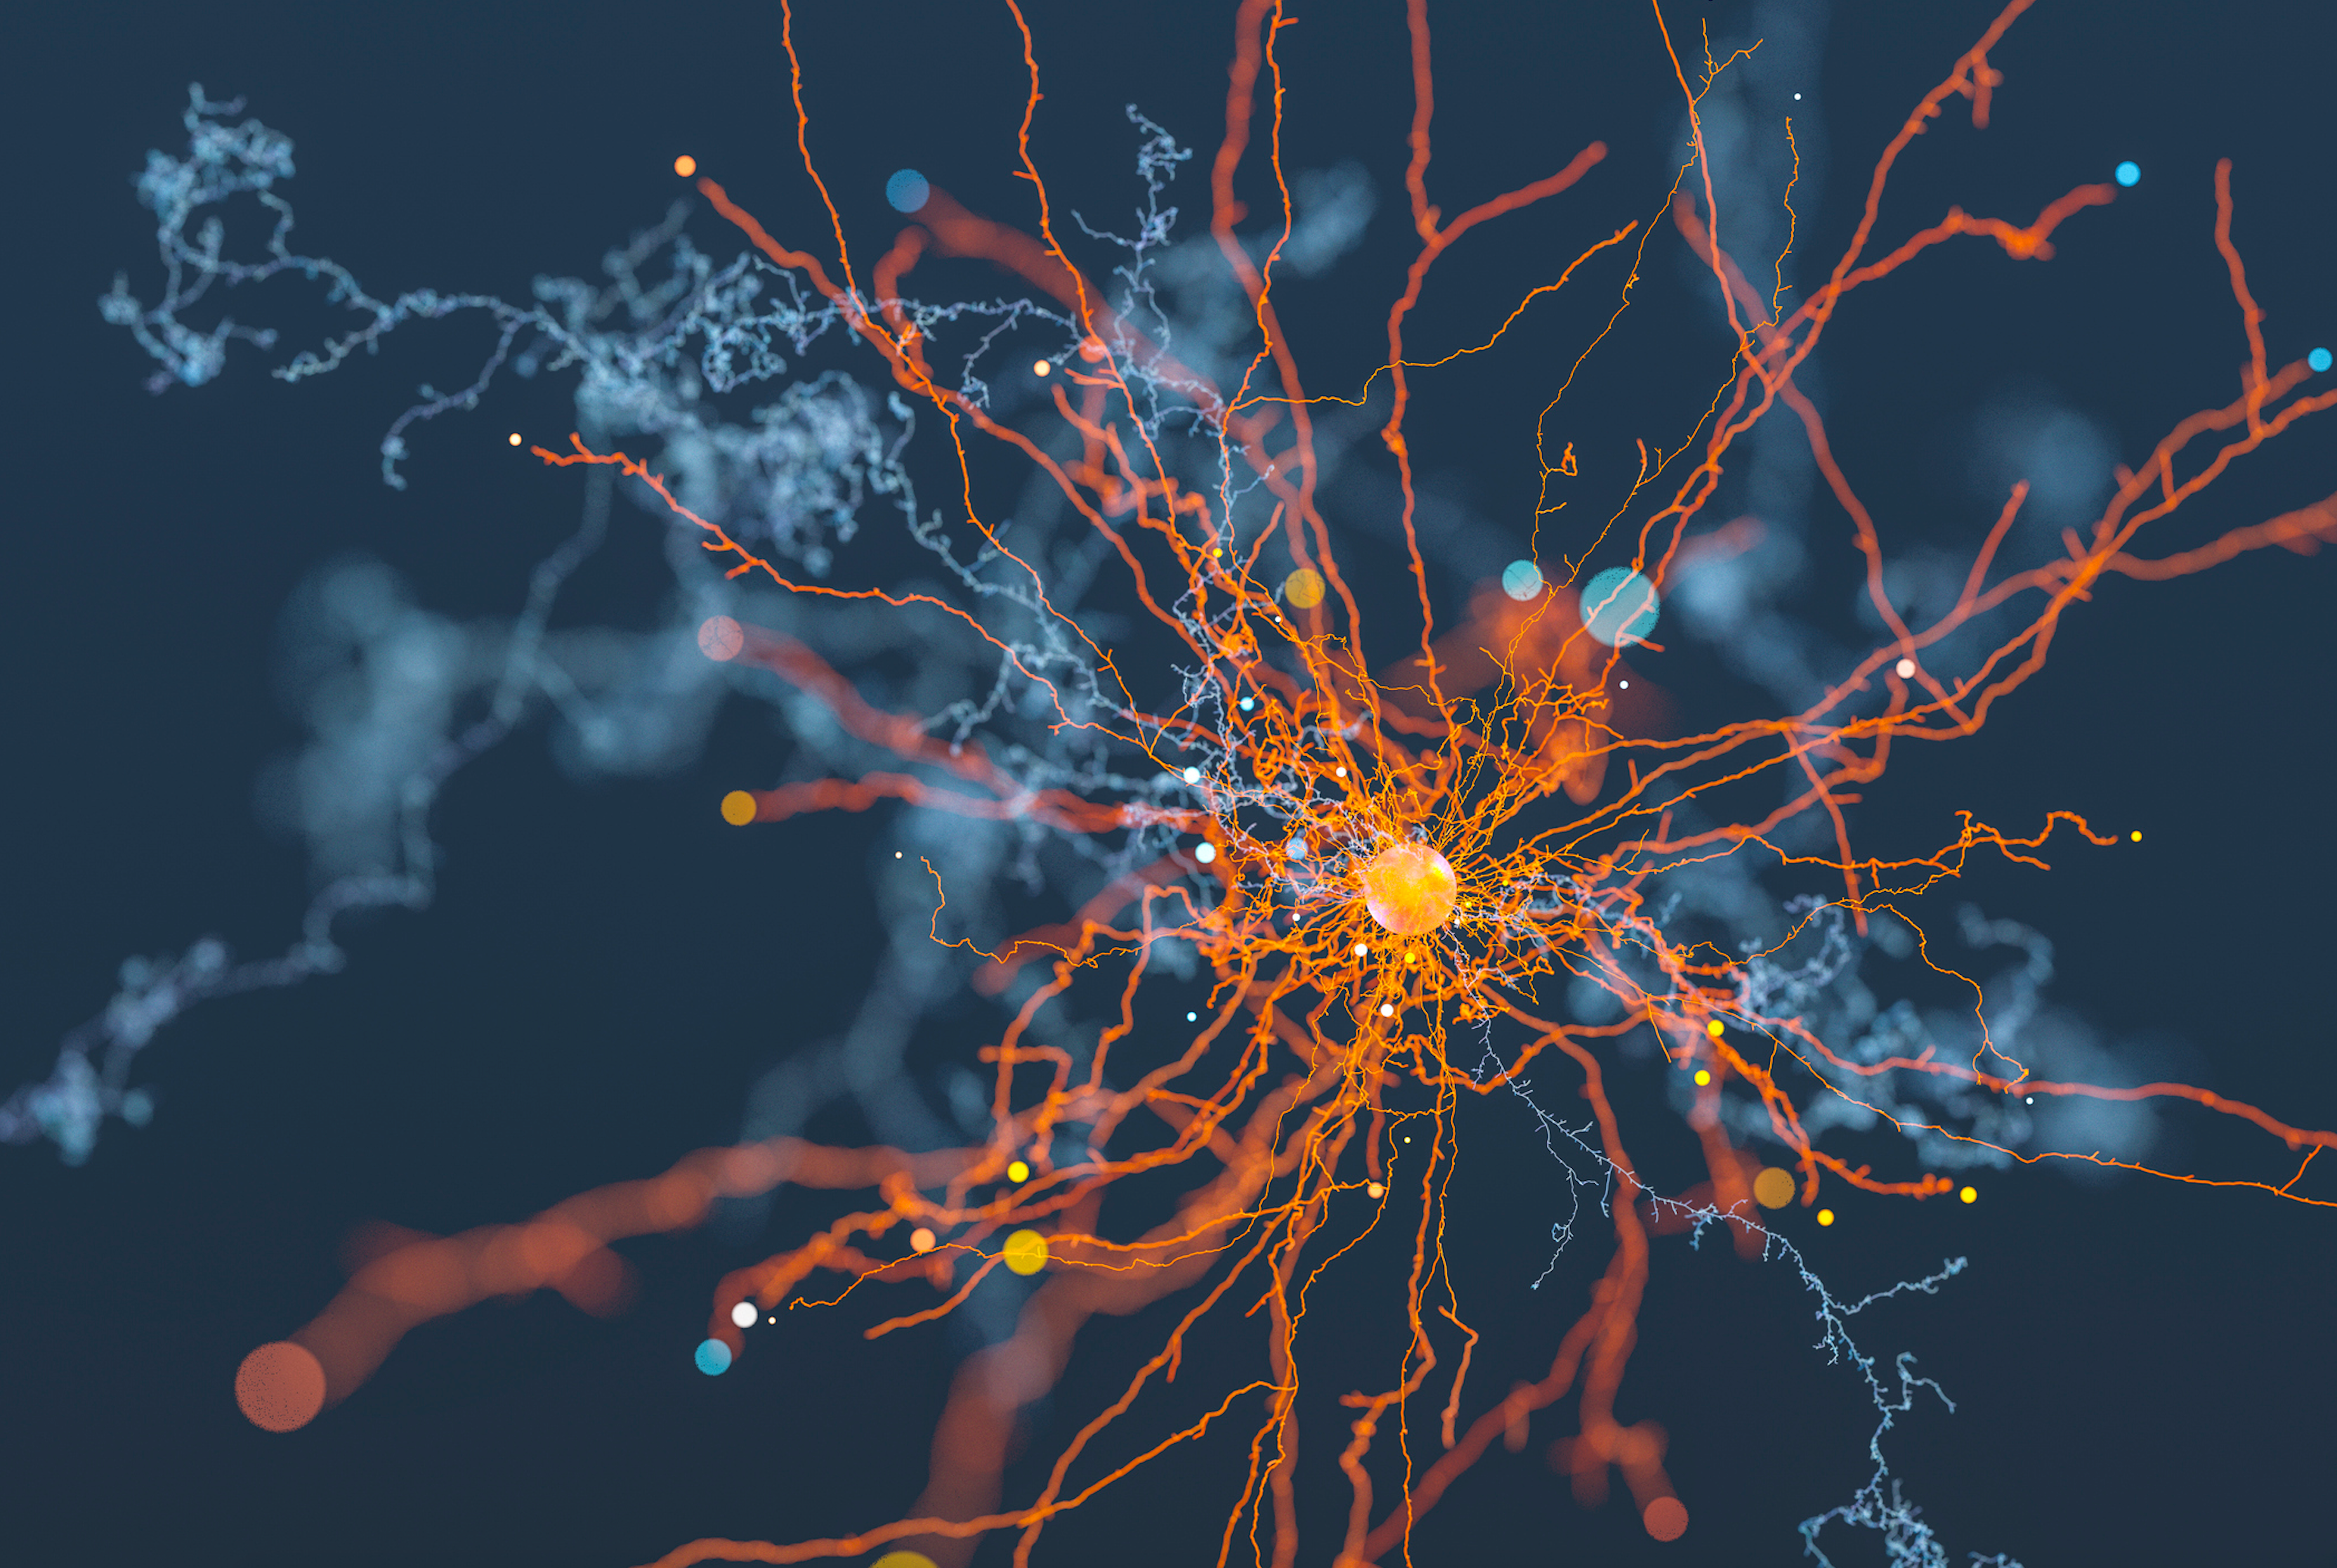 recording data from one million neurons in real time